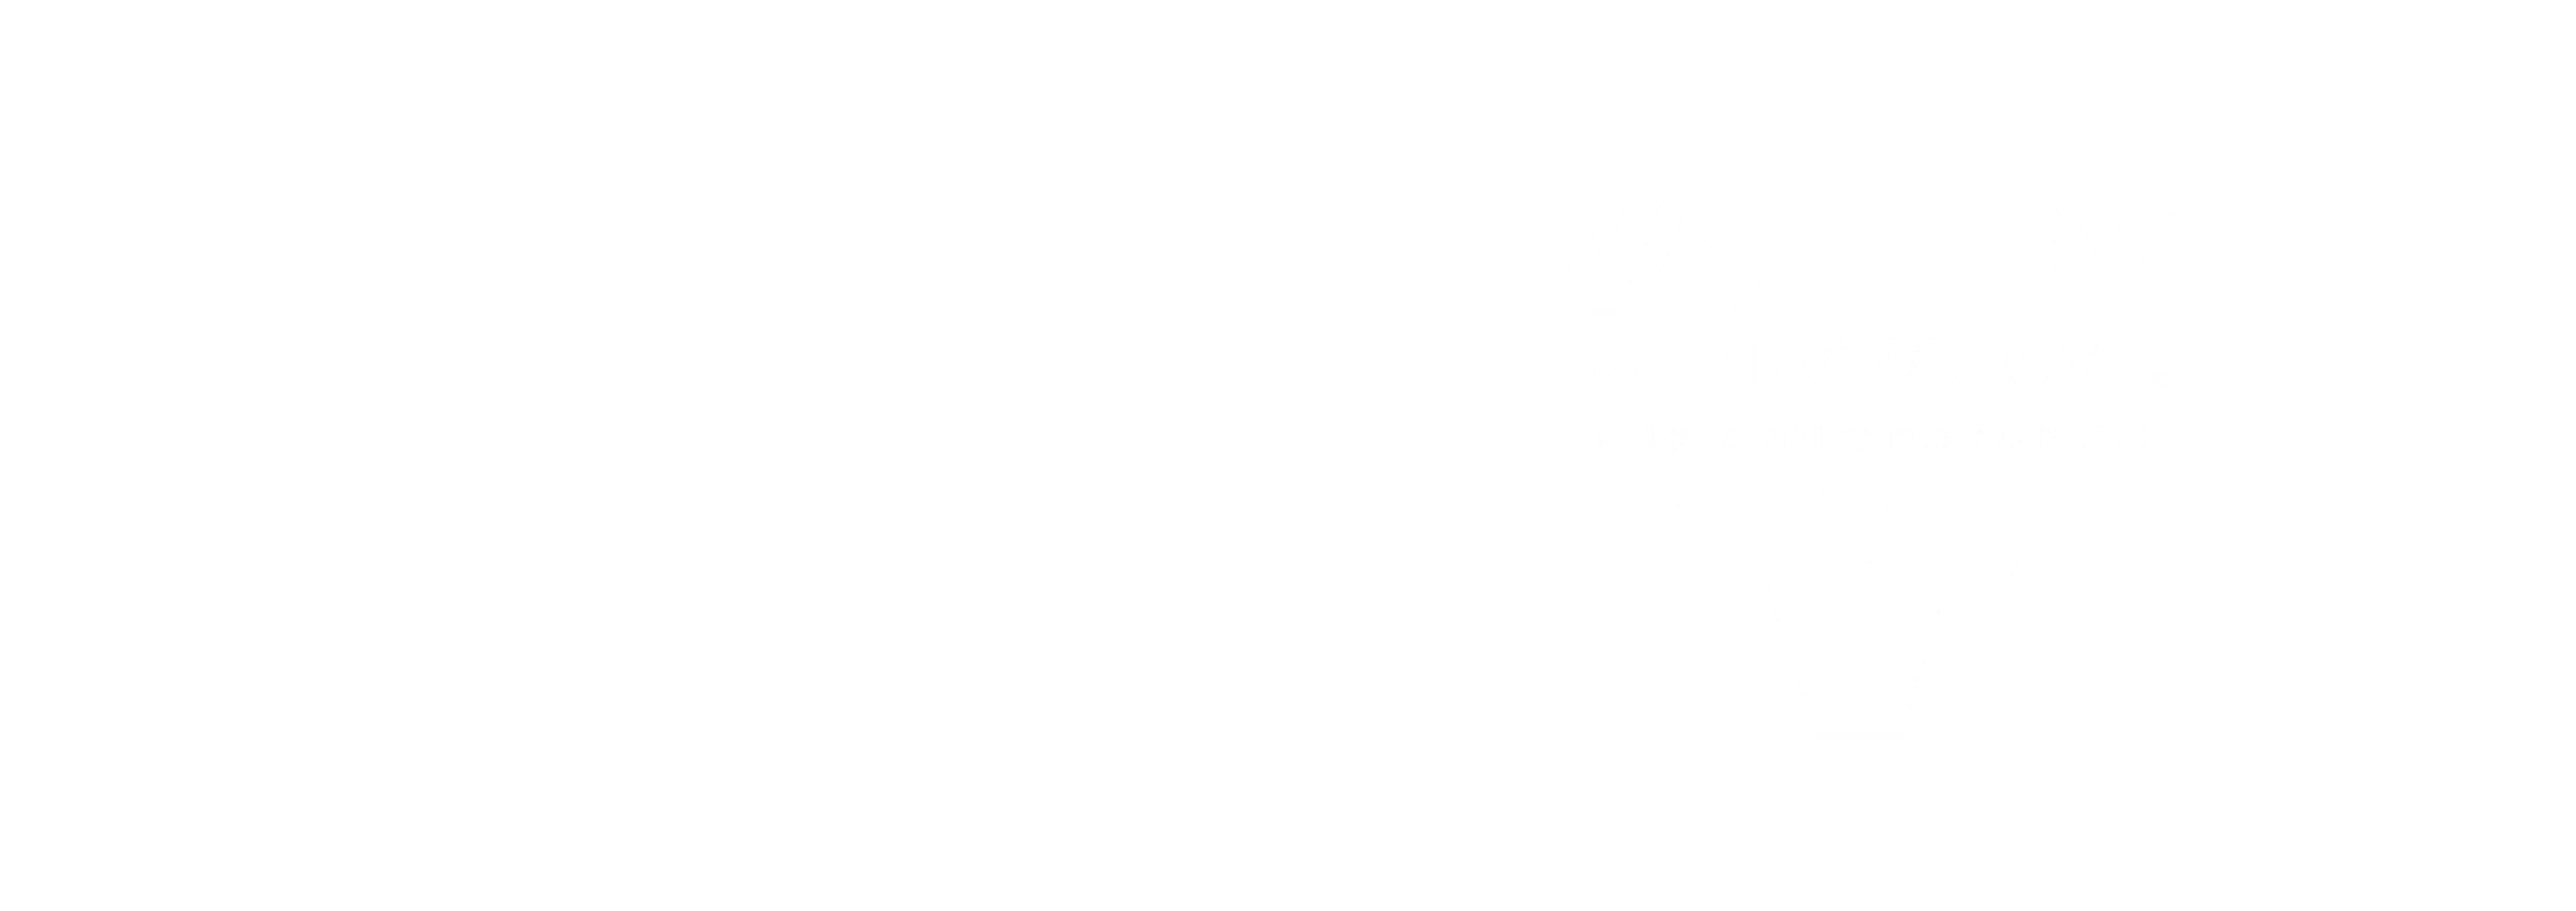 Lyft and Valley Driving school